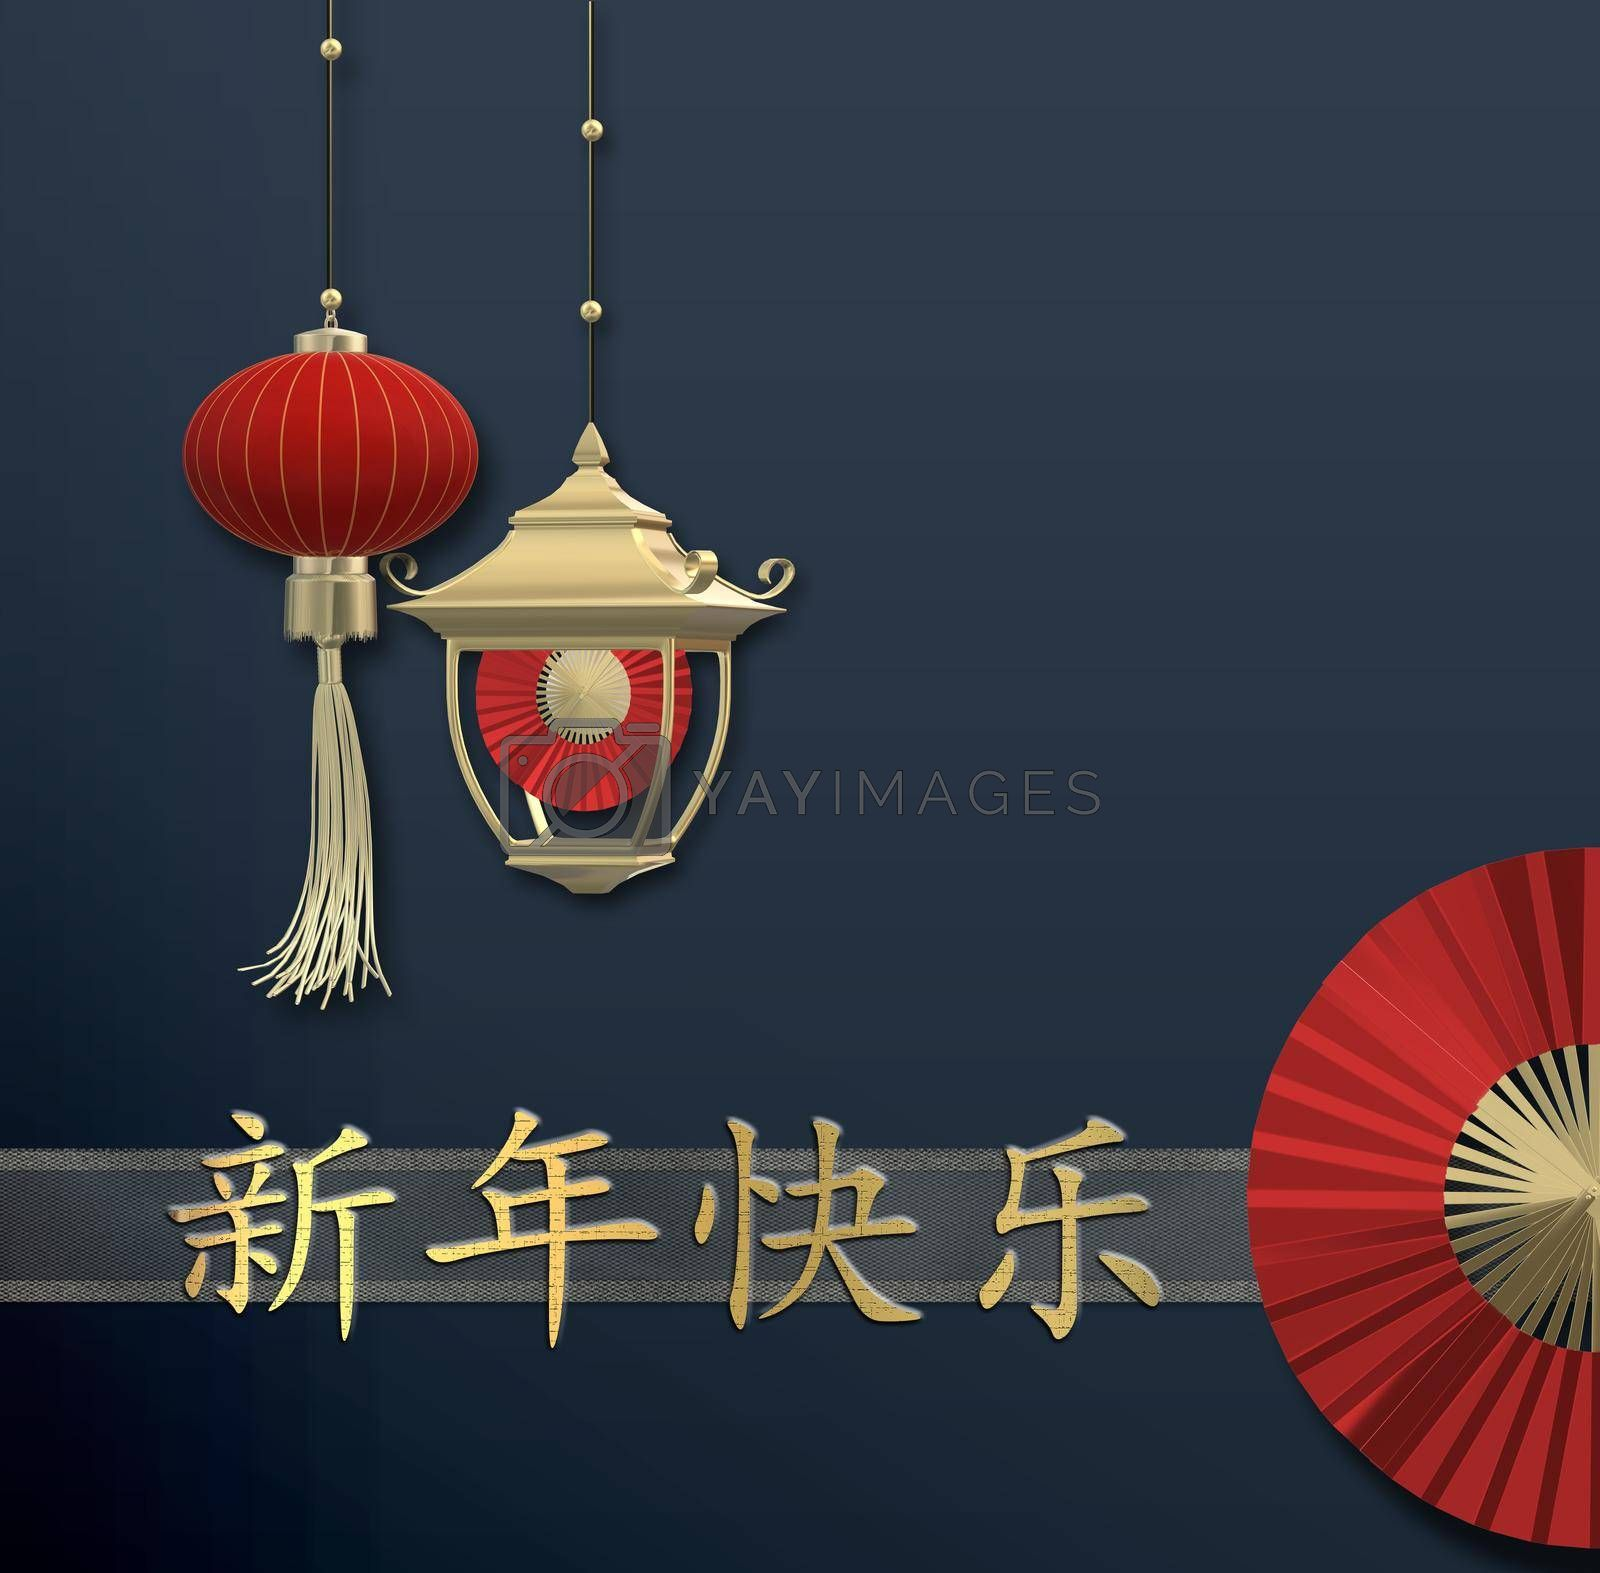 Chinese new year decoration on blue background. Red paper lanterns, red fan over blue. Chinese translation Happy Chinese New Year. Modern abstract elegant oriental greeting card. 3D illustration